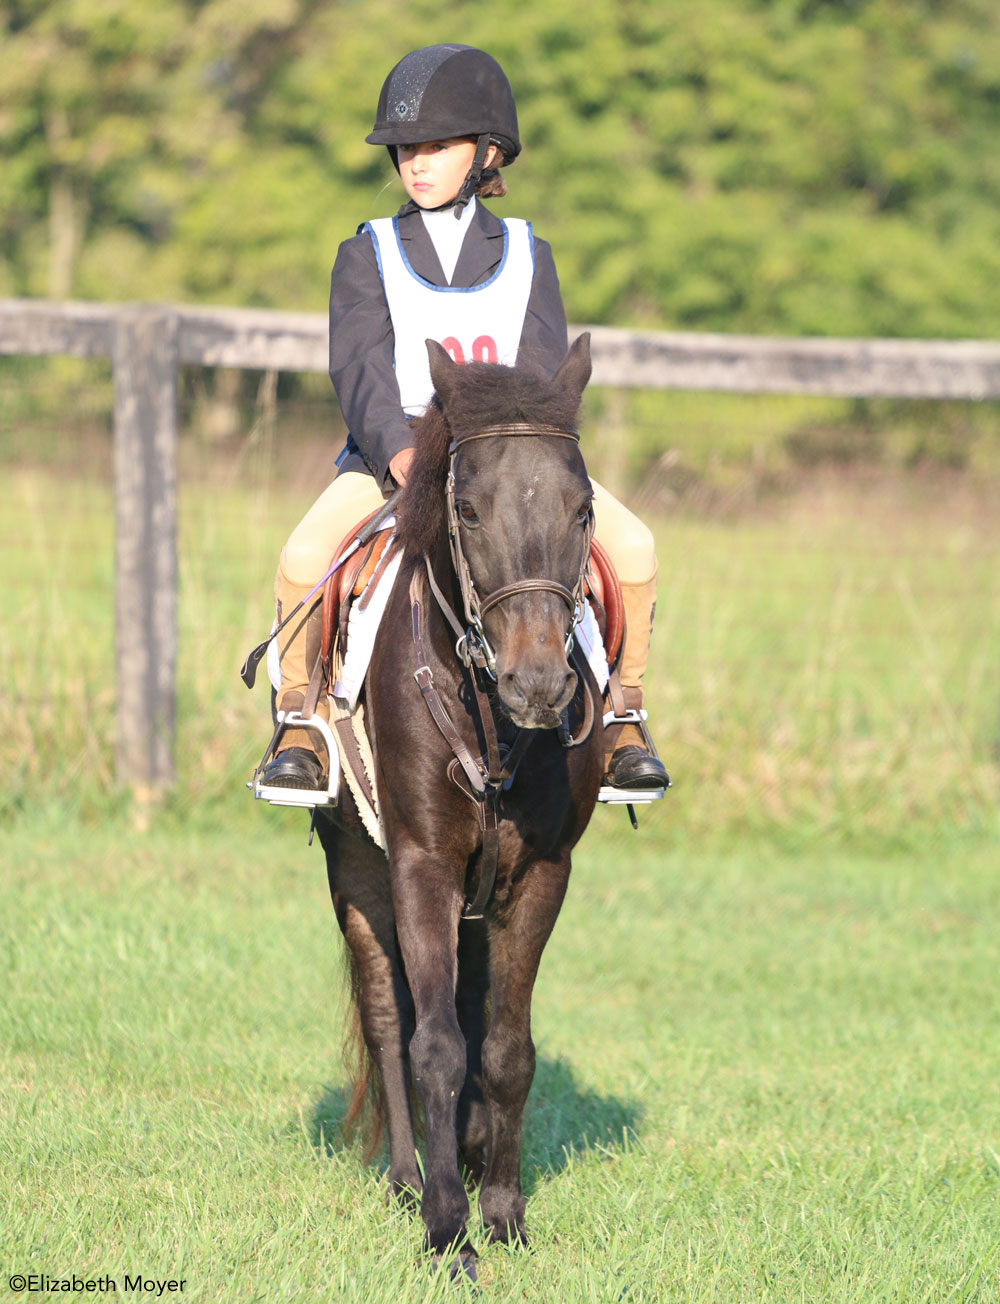 Young rider on a pony at a horse show